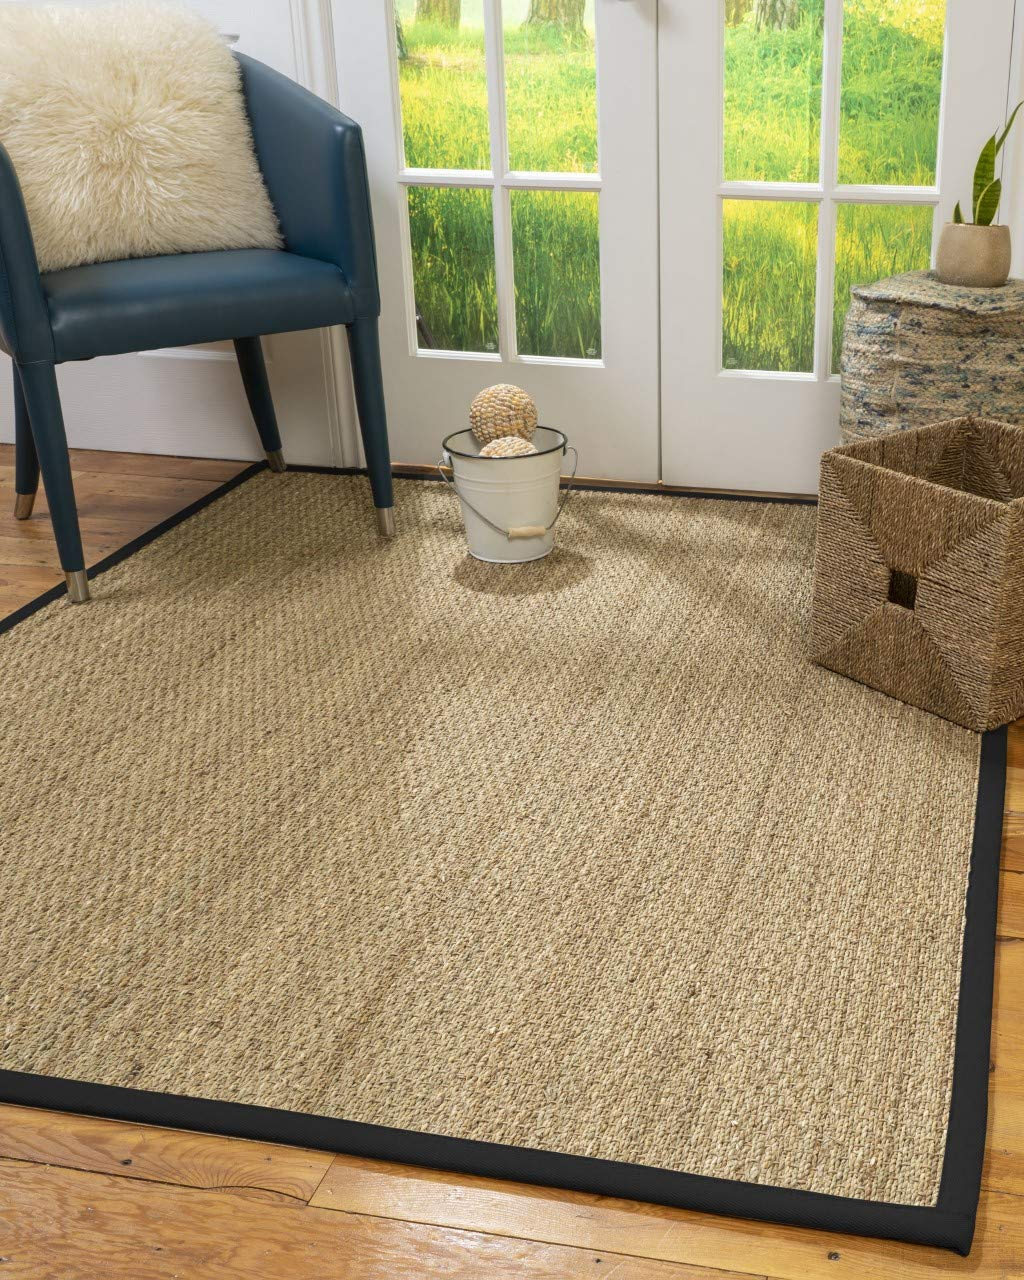 Natural Area Rugs 100 Natural Fiber Handmade Mayfair, Natural Seagrass Rug, 5 x 8 Black Border